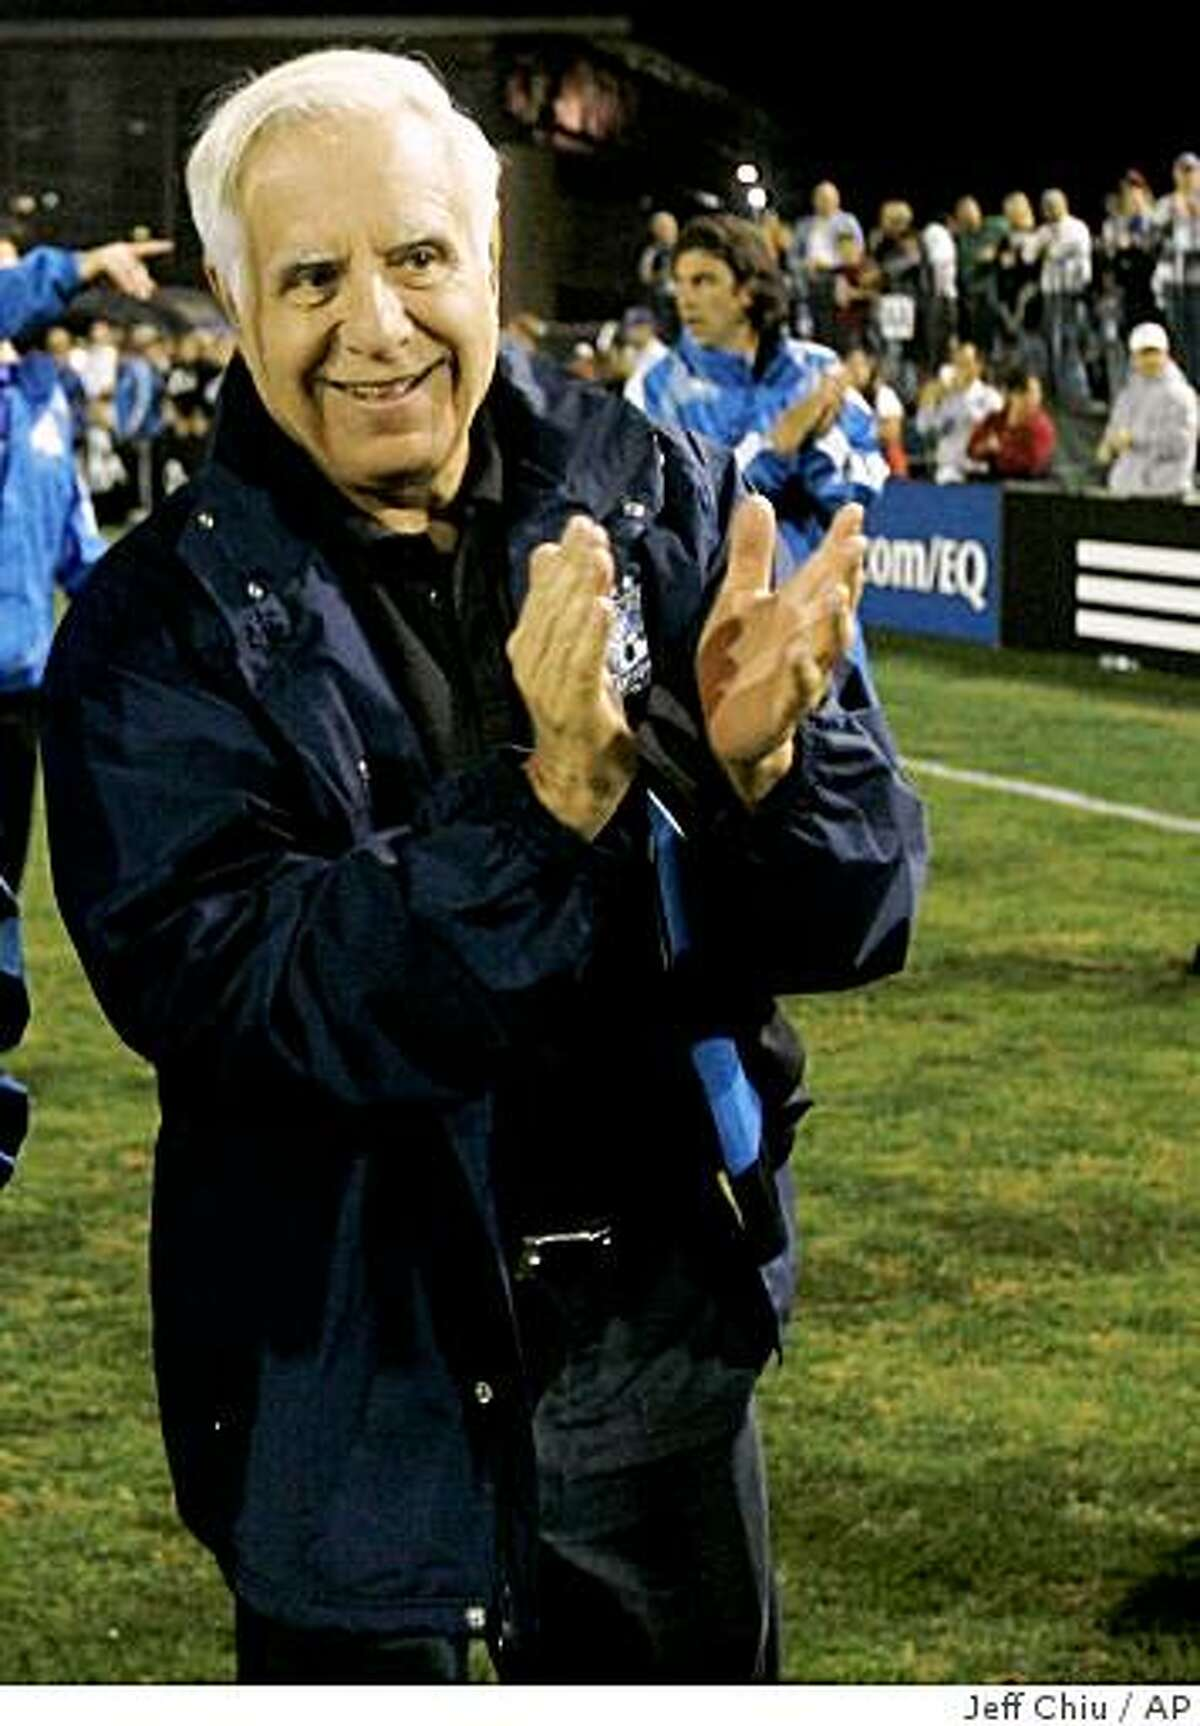 San Jose Earthquakes head coach Frank Yallop, left, and owner Lew Wolff walks on the field after beating Toronto FC in an MLS soccer match in in Santa Clara, Calif., Saturday, Oct. 25, 2008. The Earthquakes won 2-0. (AP Photo/Jeff Chiu)